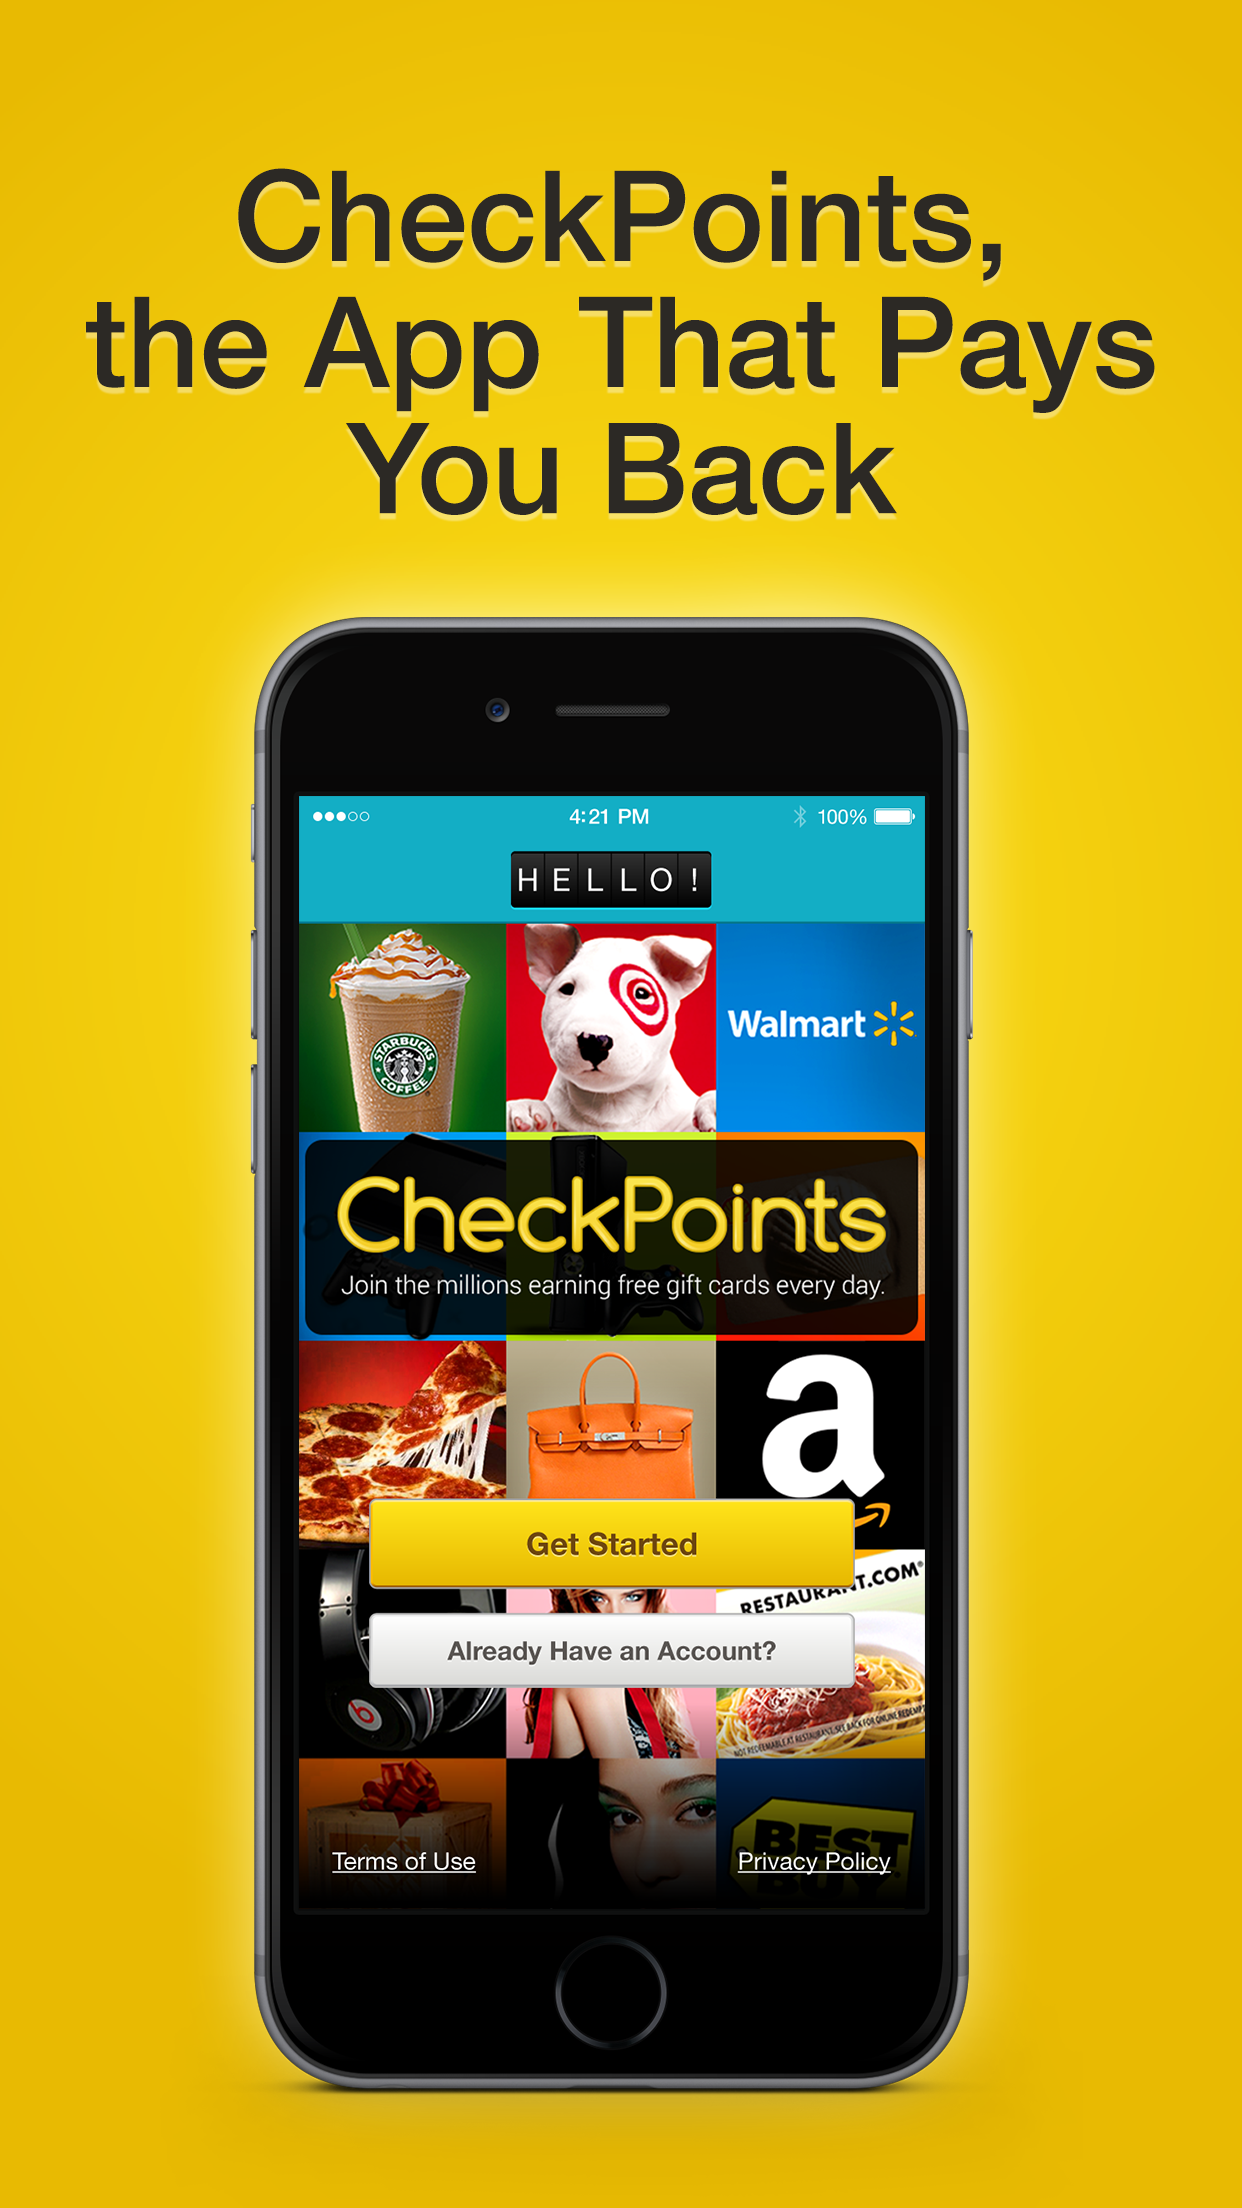 CheckPoints #1 Rewards App Screenshot